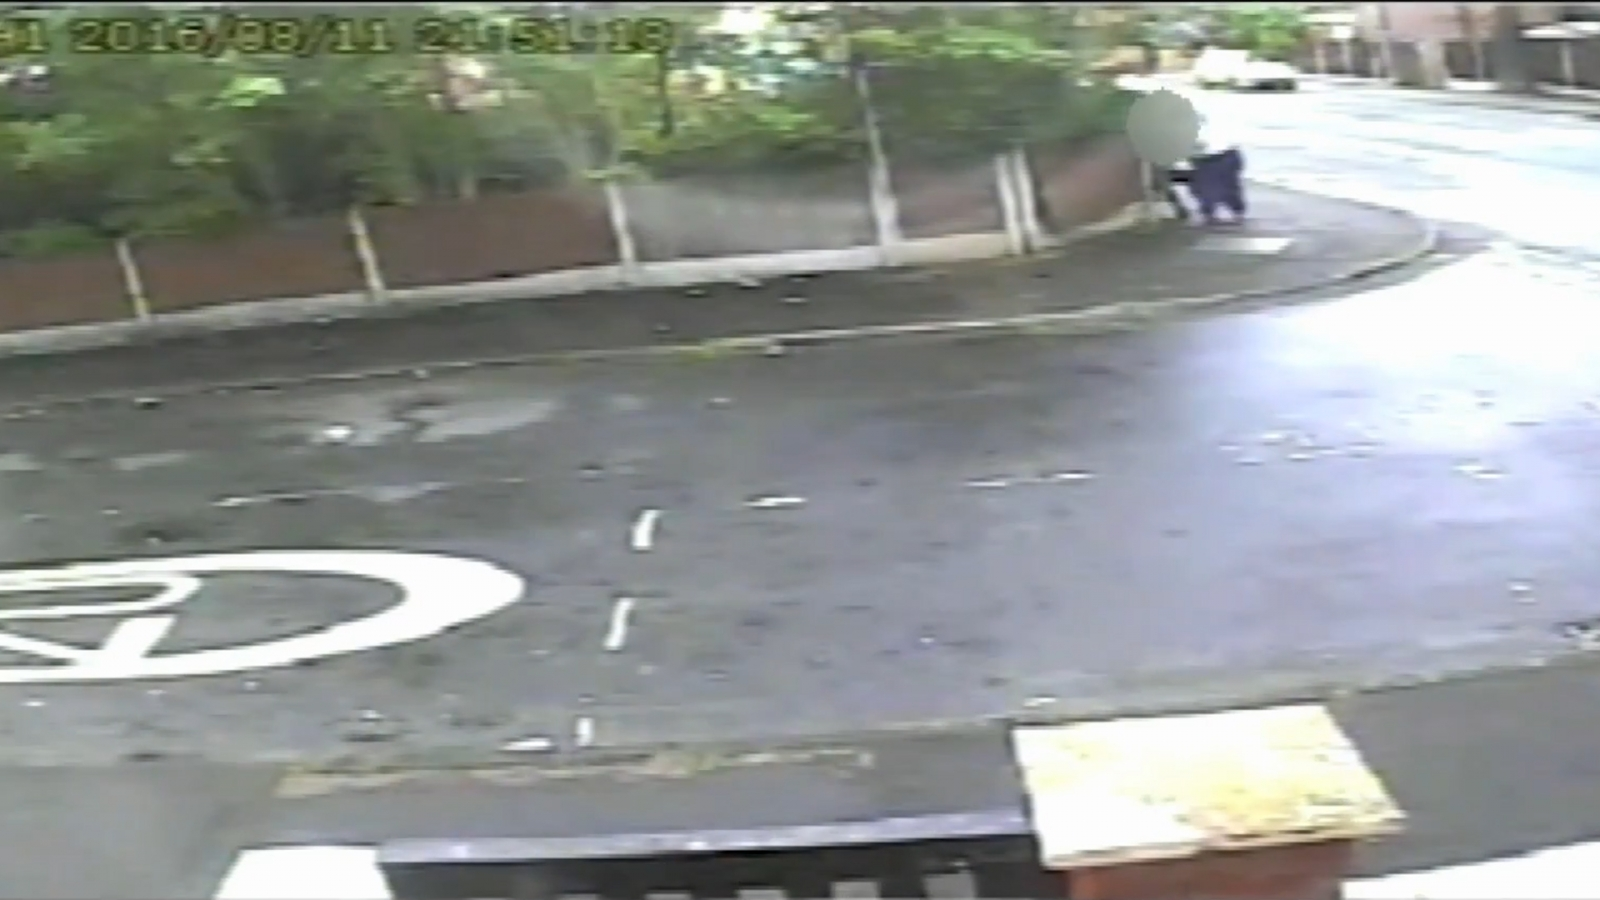 CCTV captures shocking knife attack